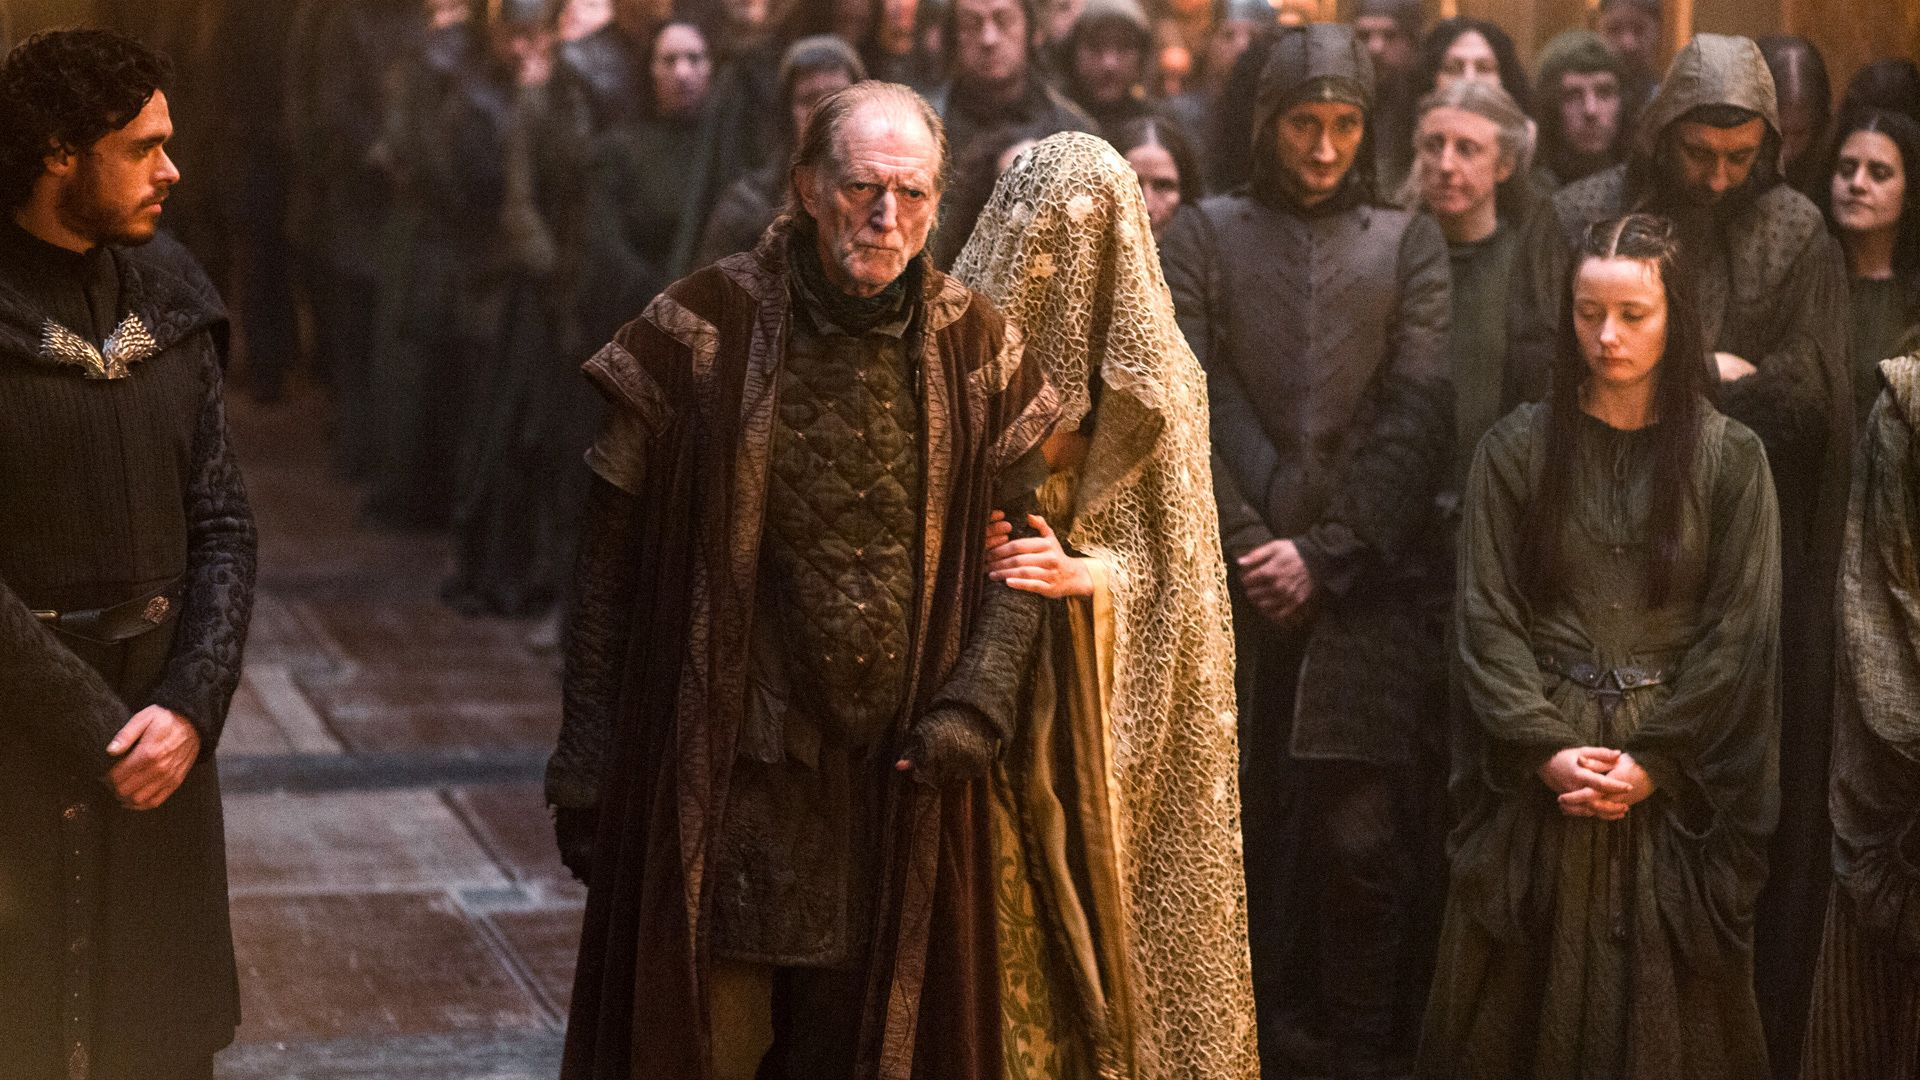 Game Of Thrones Official Website For The Hbo Series Hbo Com Game Of Thrones Throne Game Of Thrones Costumes